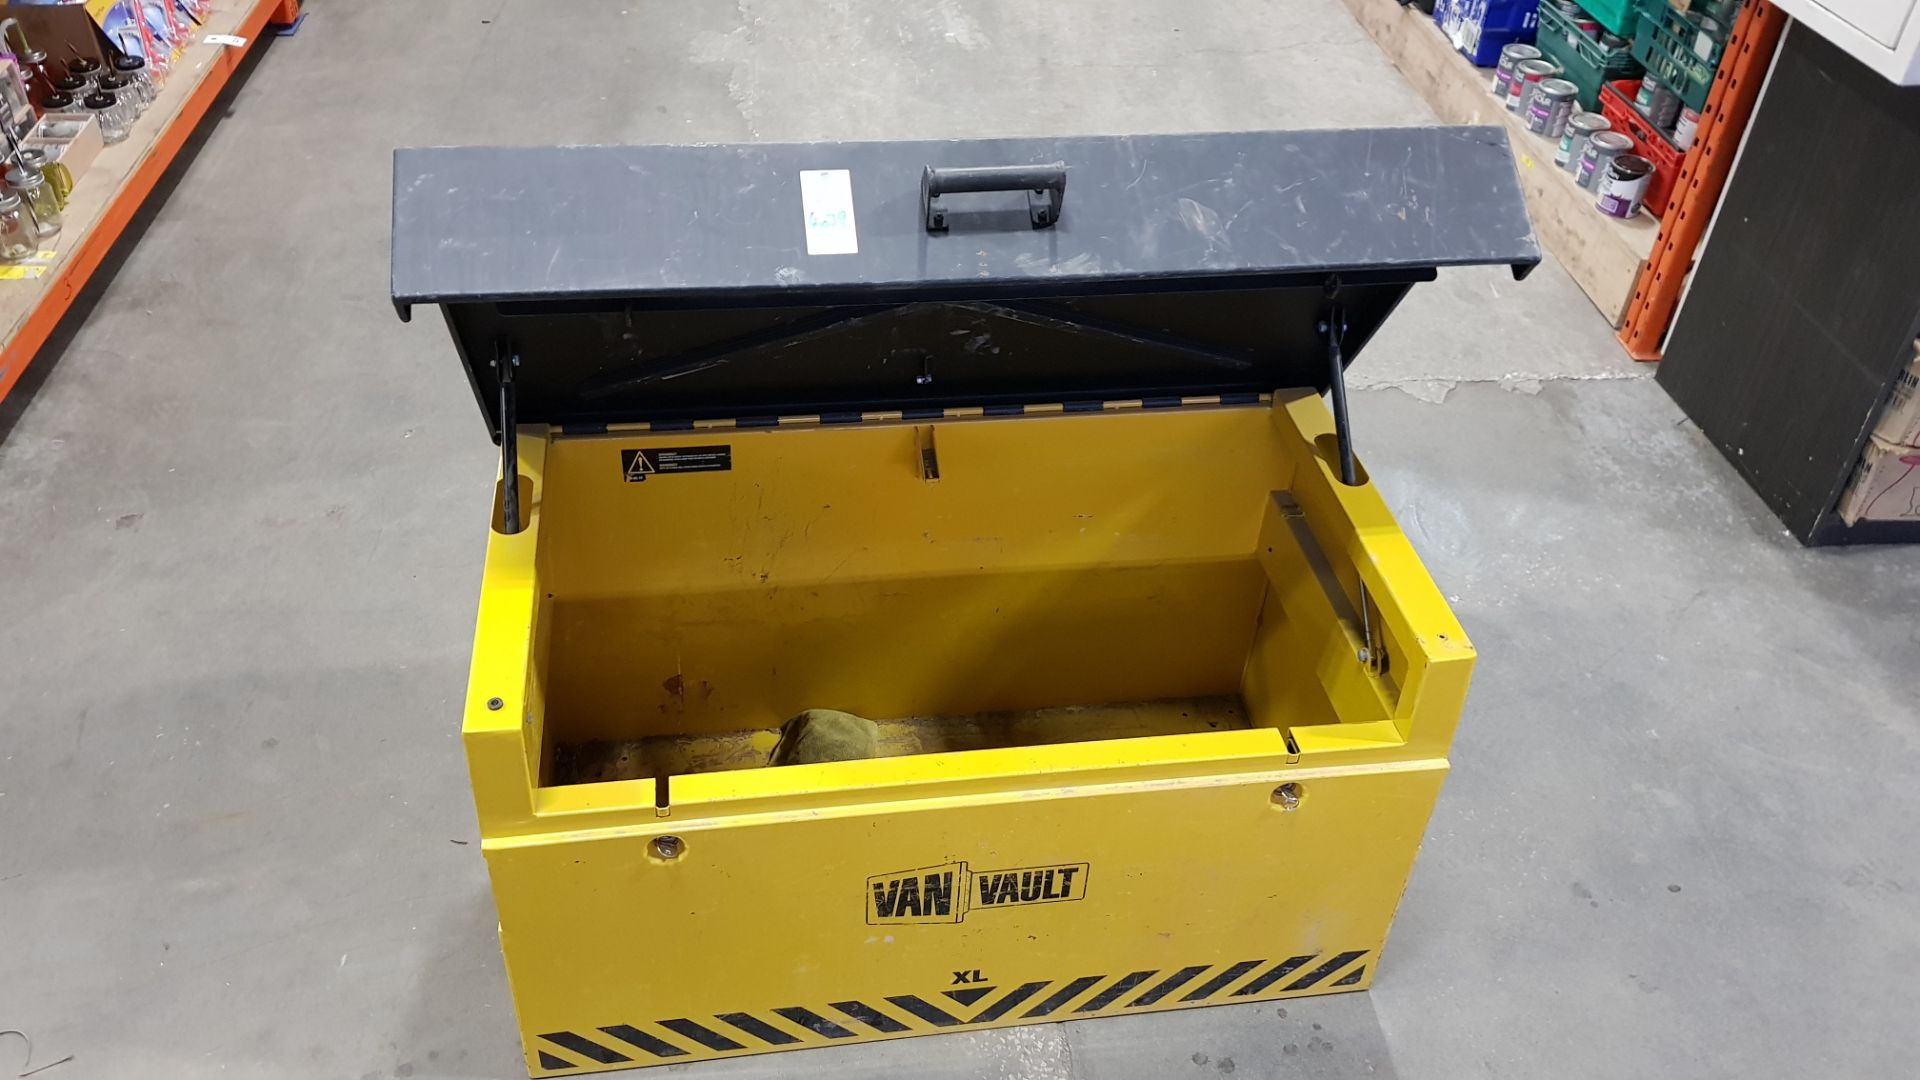 1 X XL VAN VAULT *GOOD CONDITION WITH KEYS SERIAL NUMBER - LM 015406 COLOUR - BLACK & YELLOW